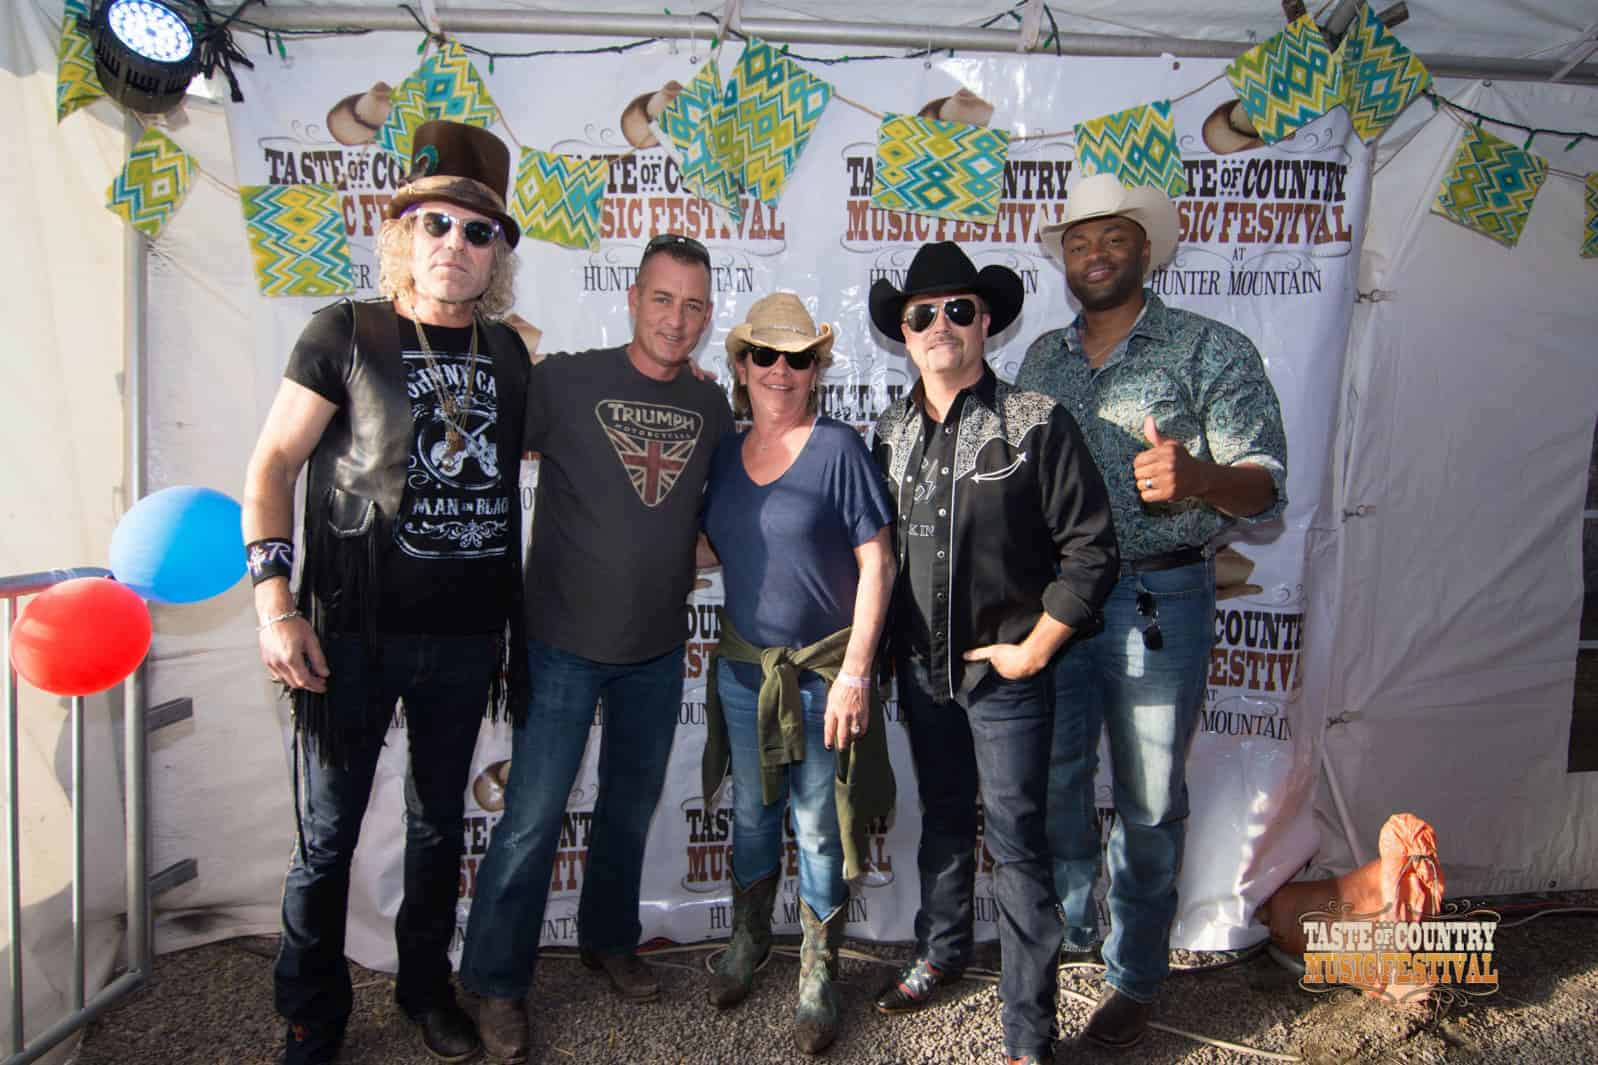 Photos meet and greet with big rich taste of country meet and greet photos with big rich at taste of country music festival 2016 m4hsunfo